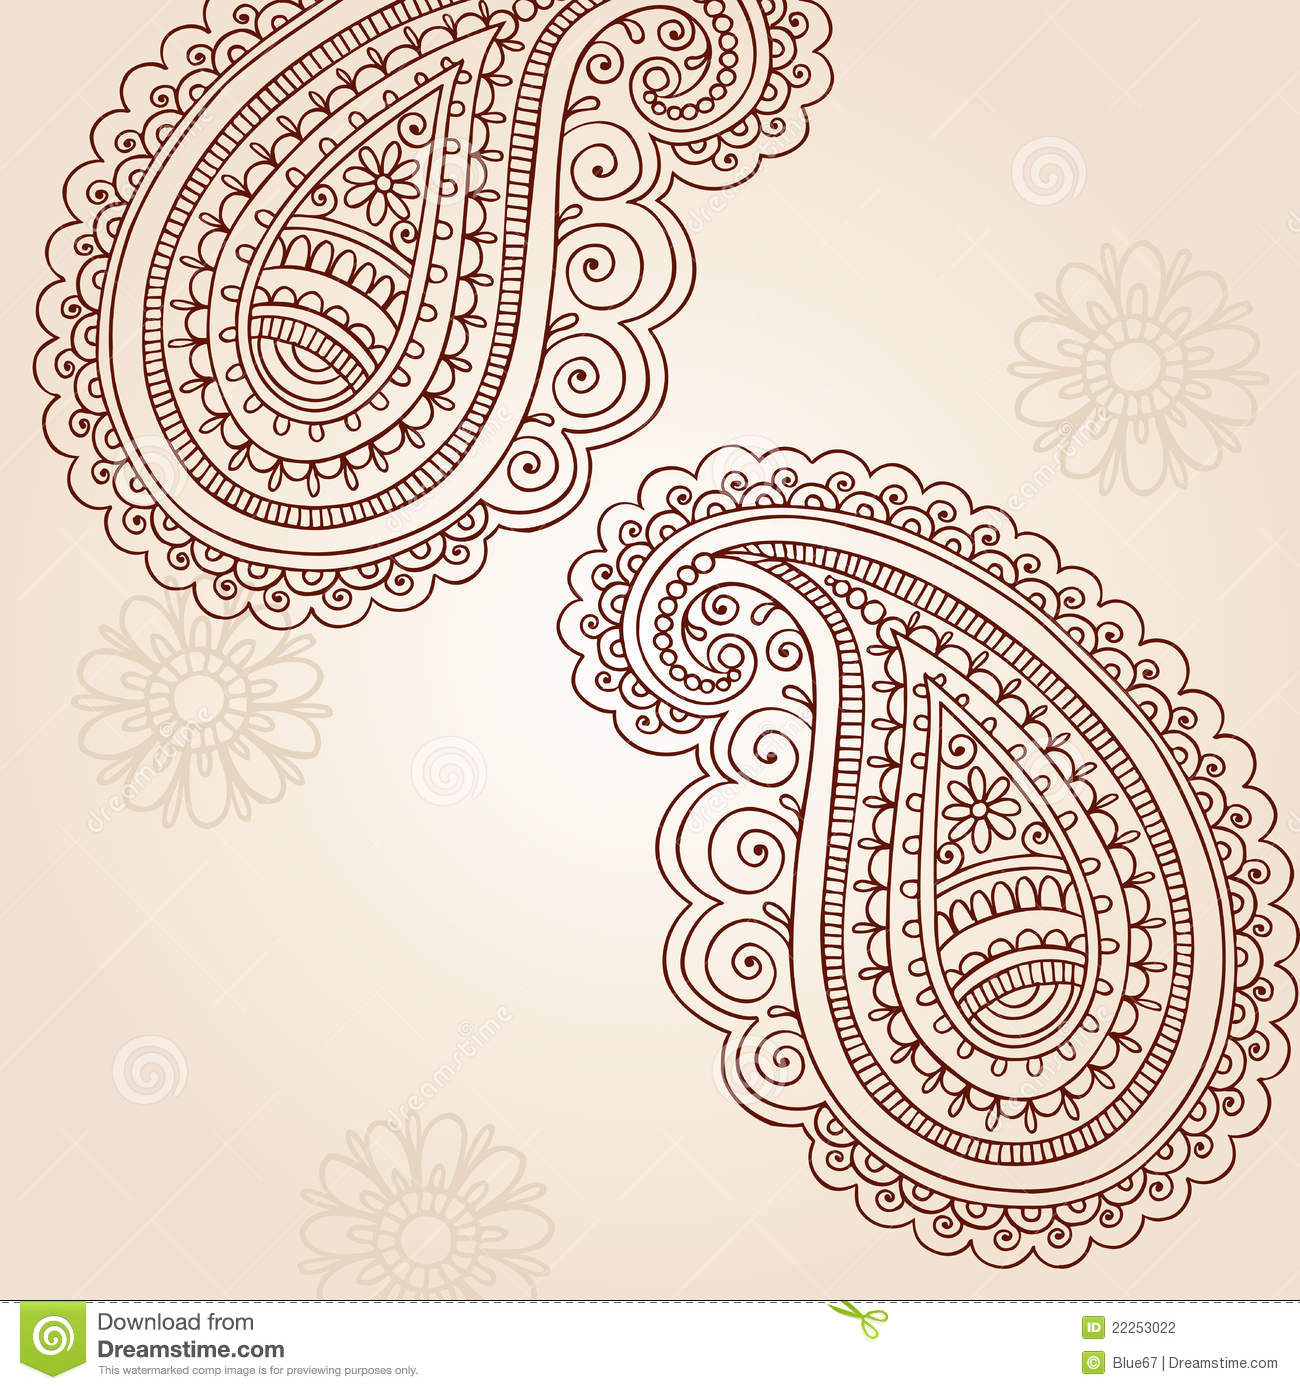 70cfd51be Henna Mehndi Paisley Doodle Vector Design Elements royalty free illustration